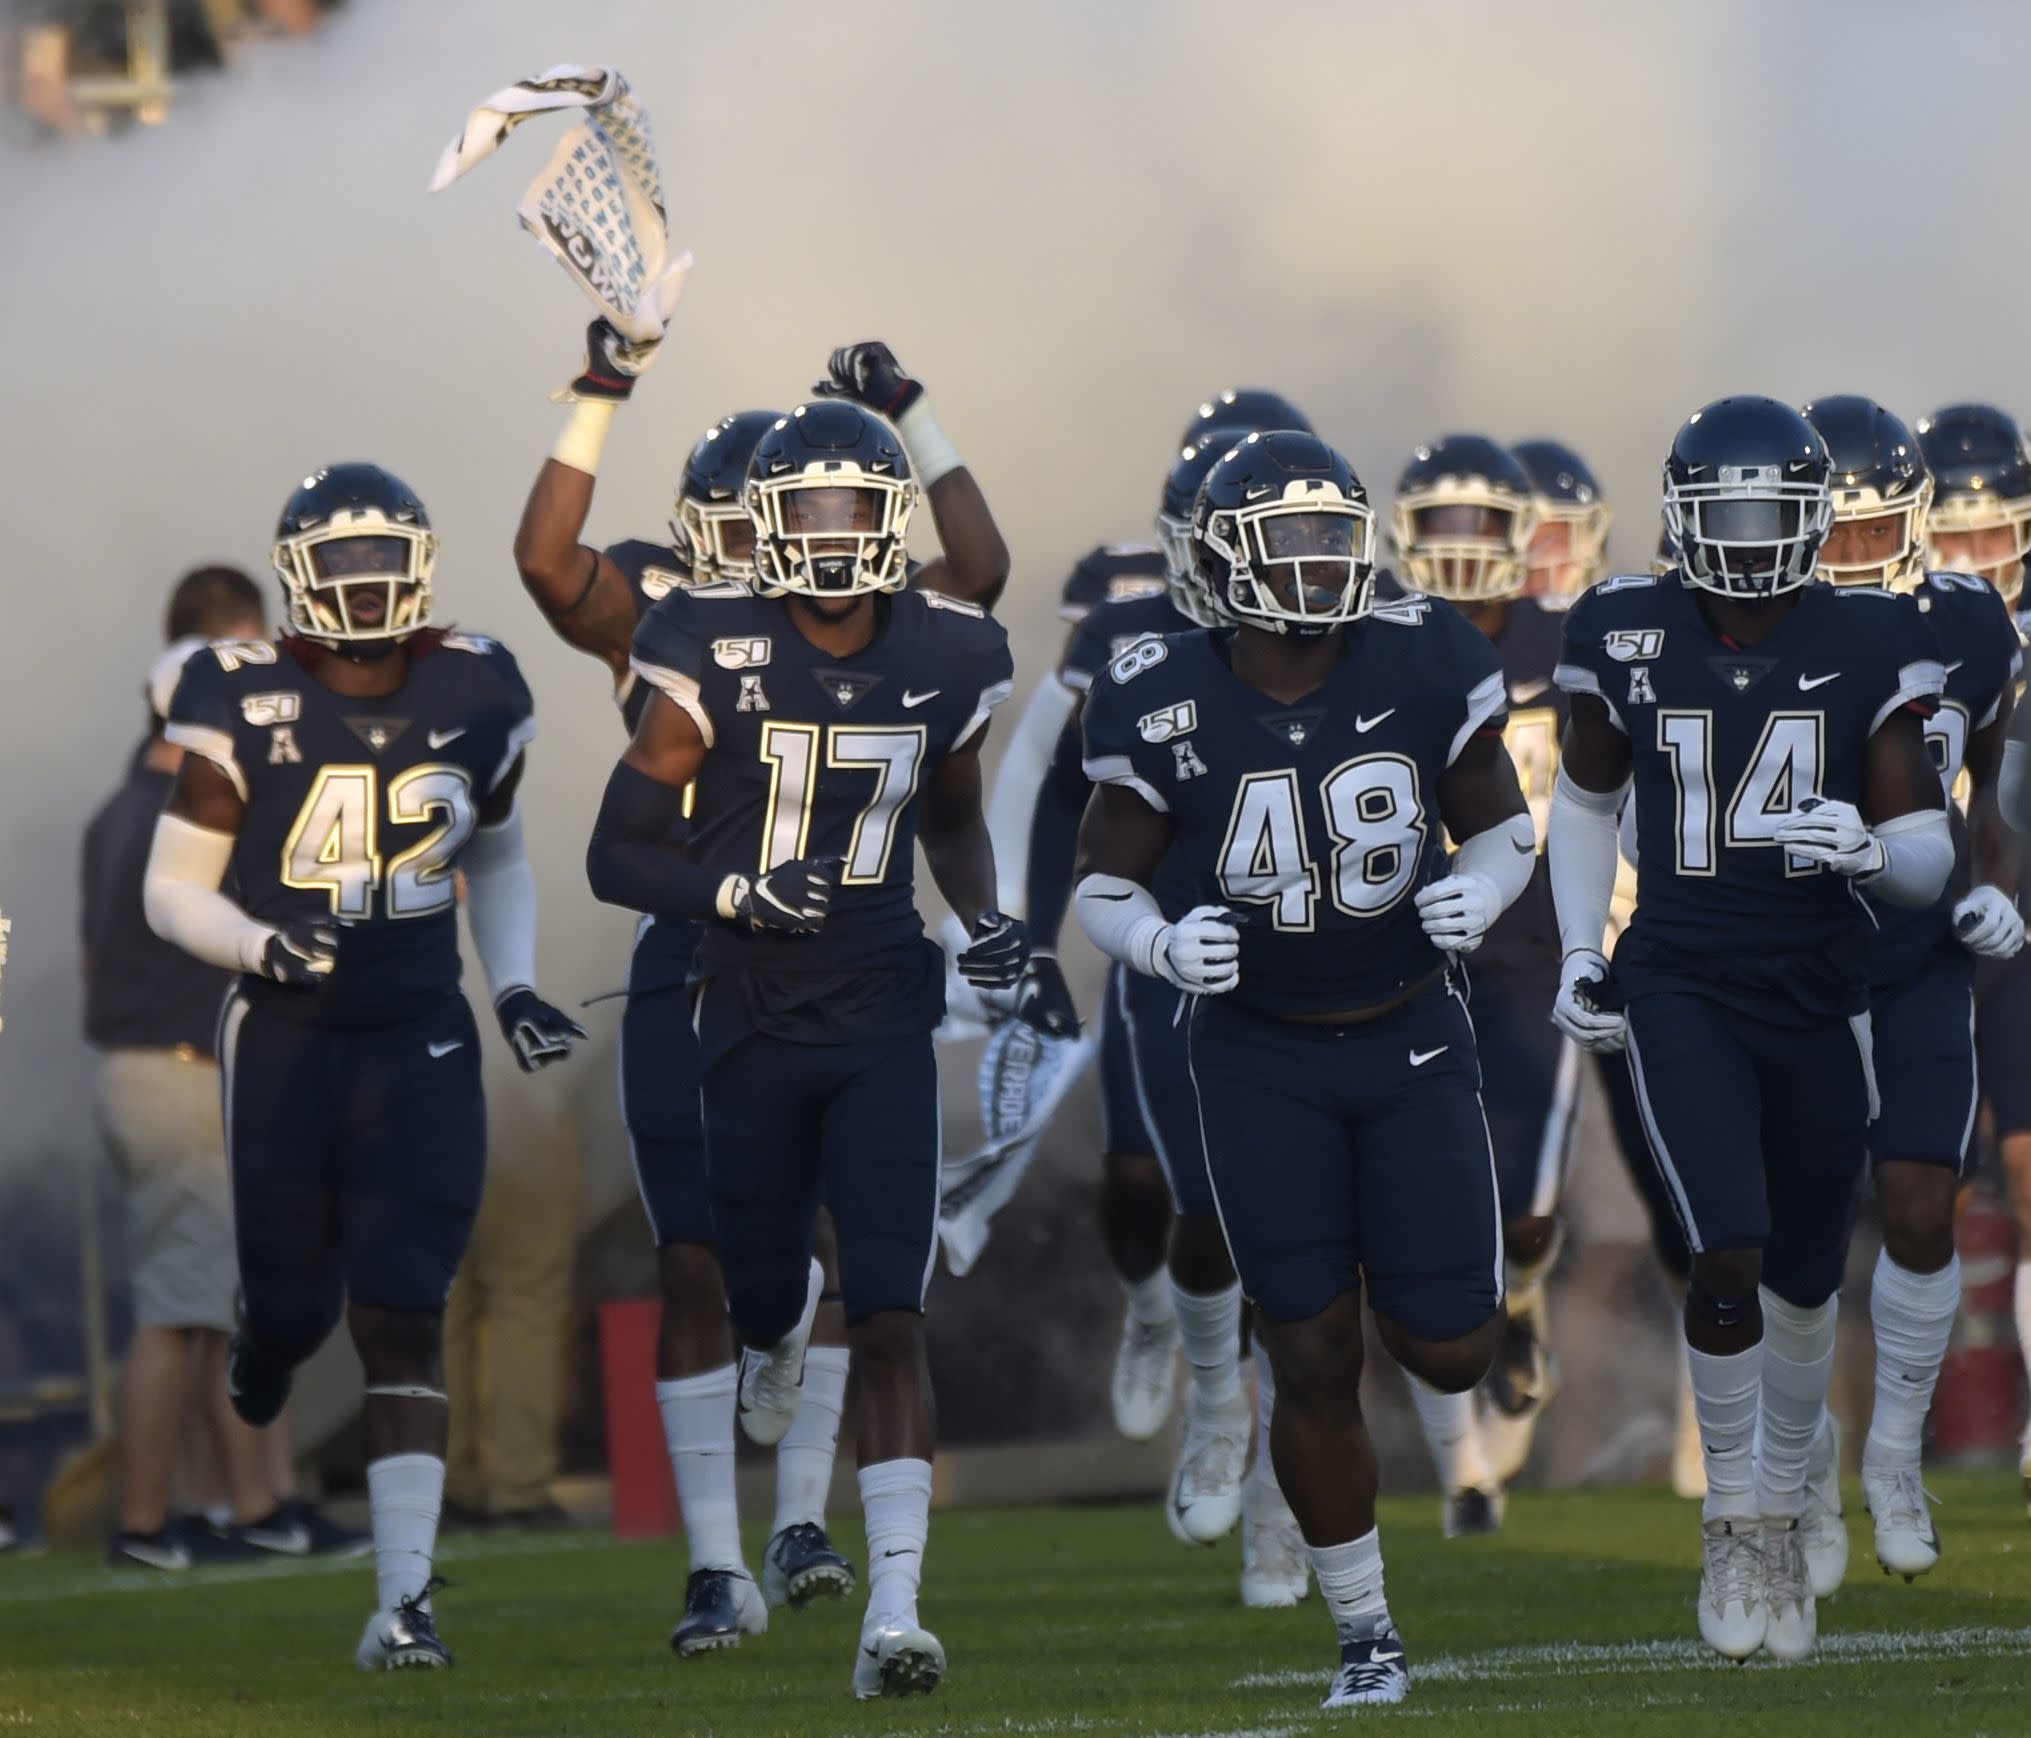 Will UConn play football this year? Public health experts unsure about fall sports during coronavirus pandemic